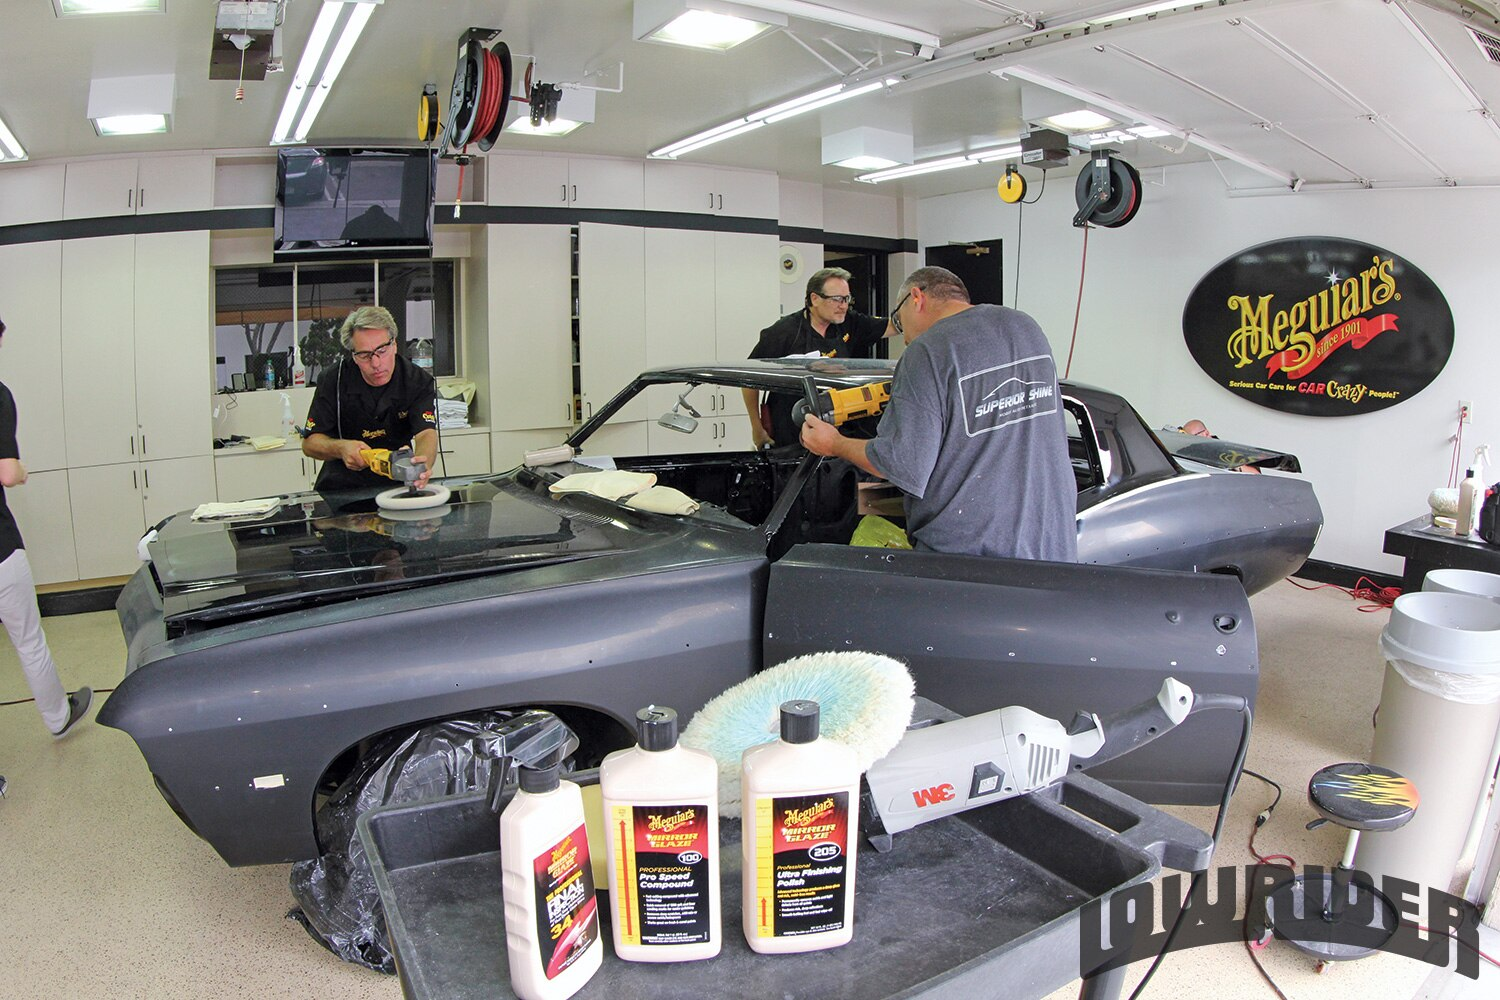 <strong>1</strong>. The Meguiar's team consisted of only the best in the field.